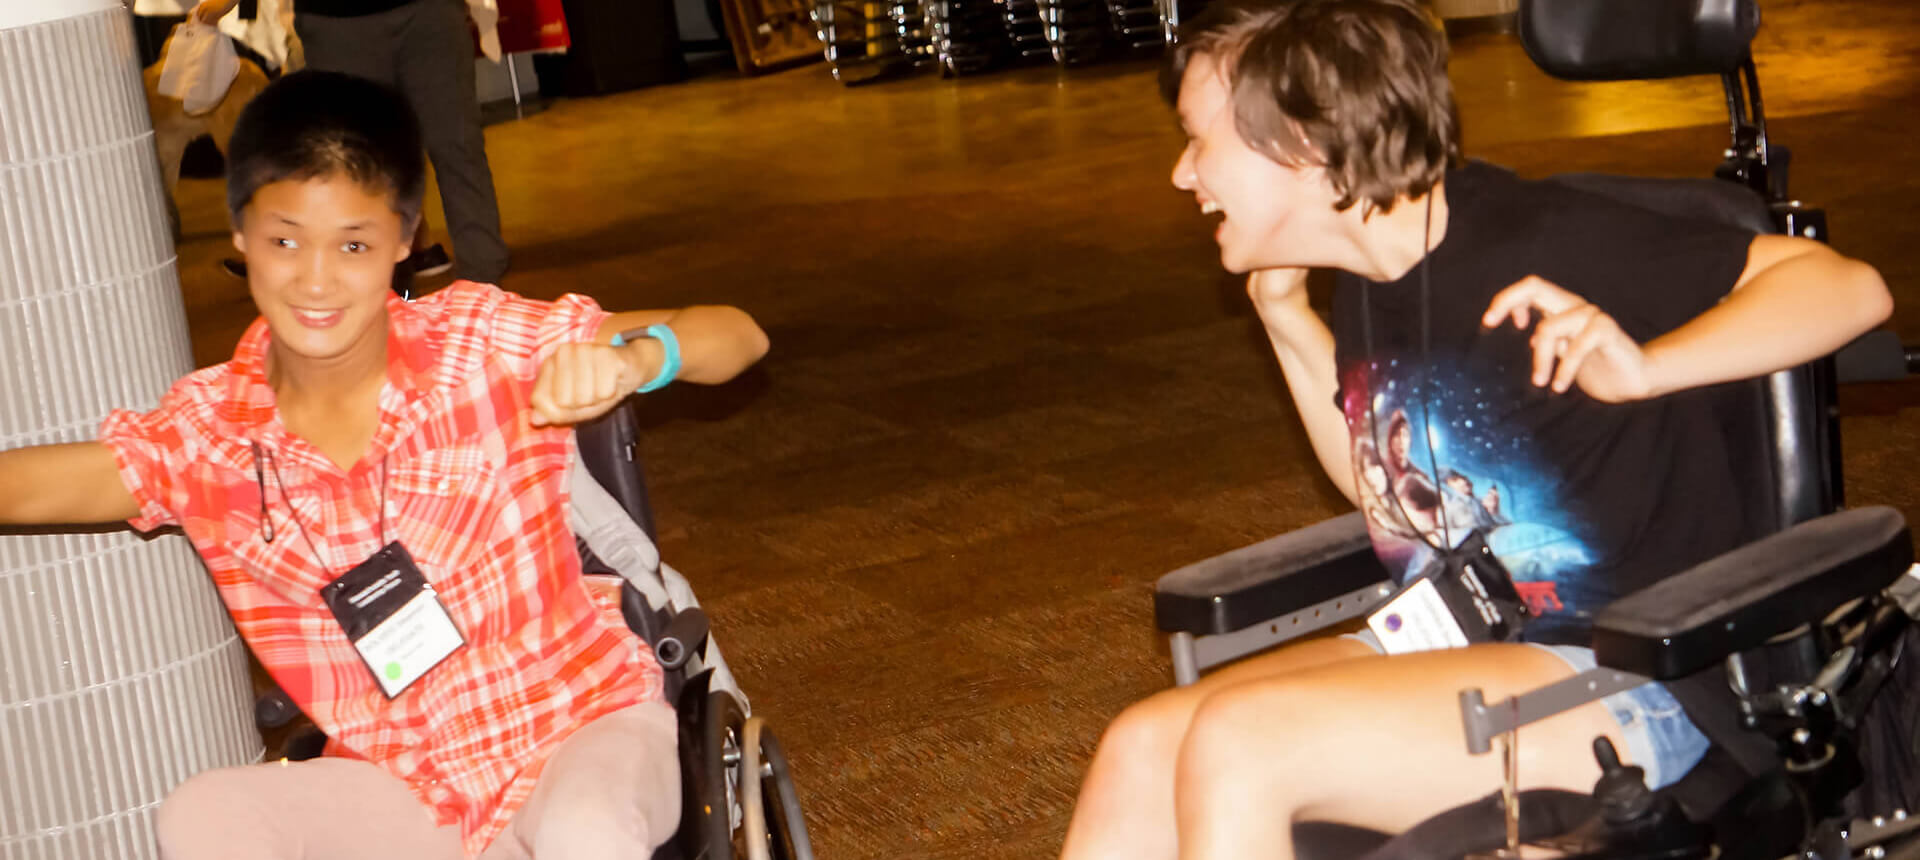 Two disabled youth in wheelchairs having a laugh together